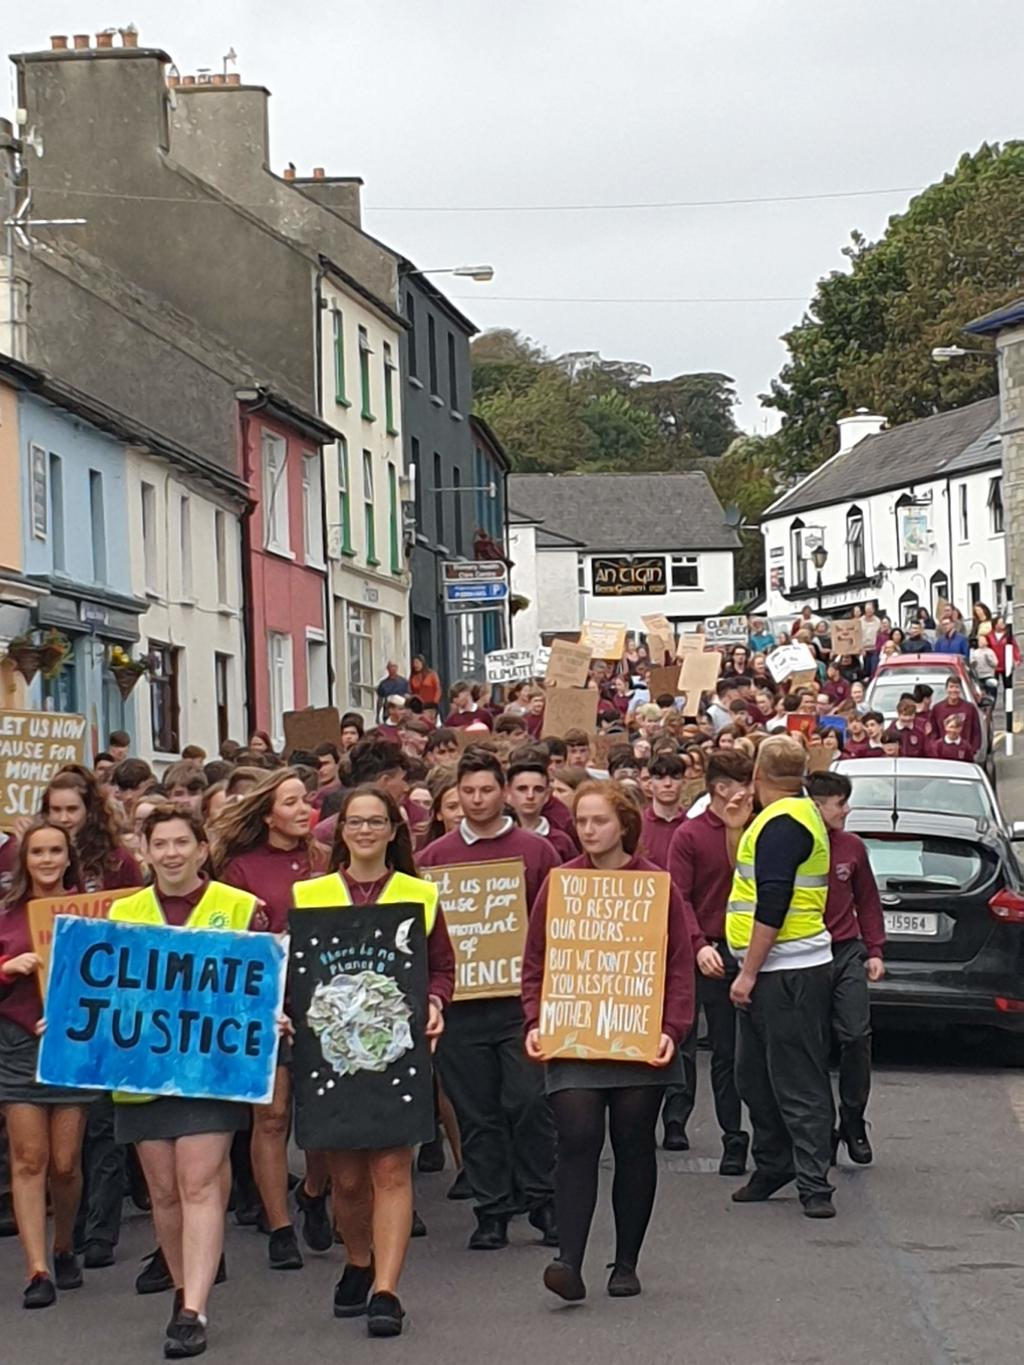 Blessington and District Forum - Environmental Protection